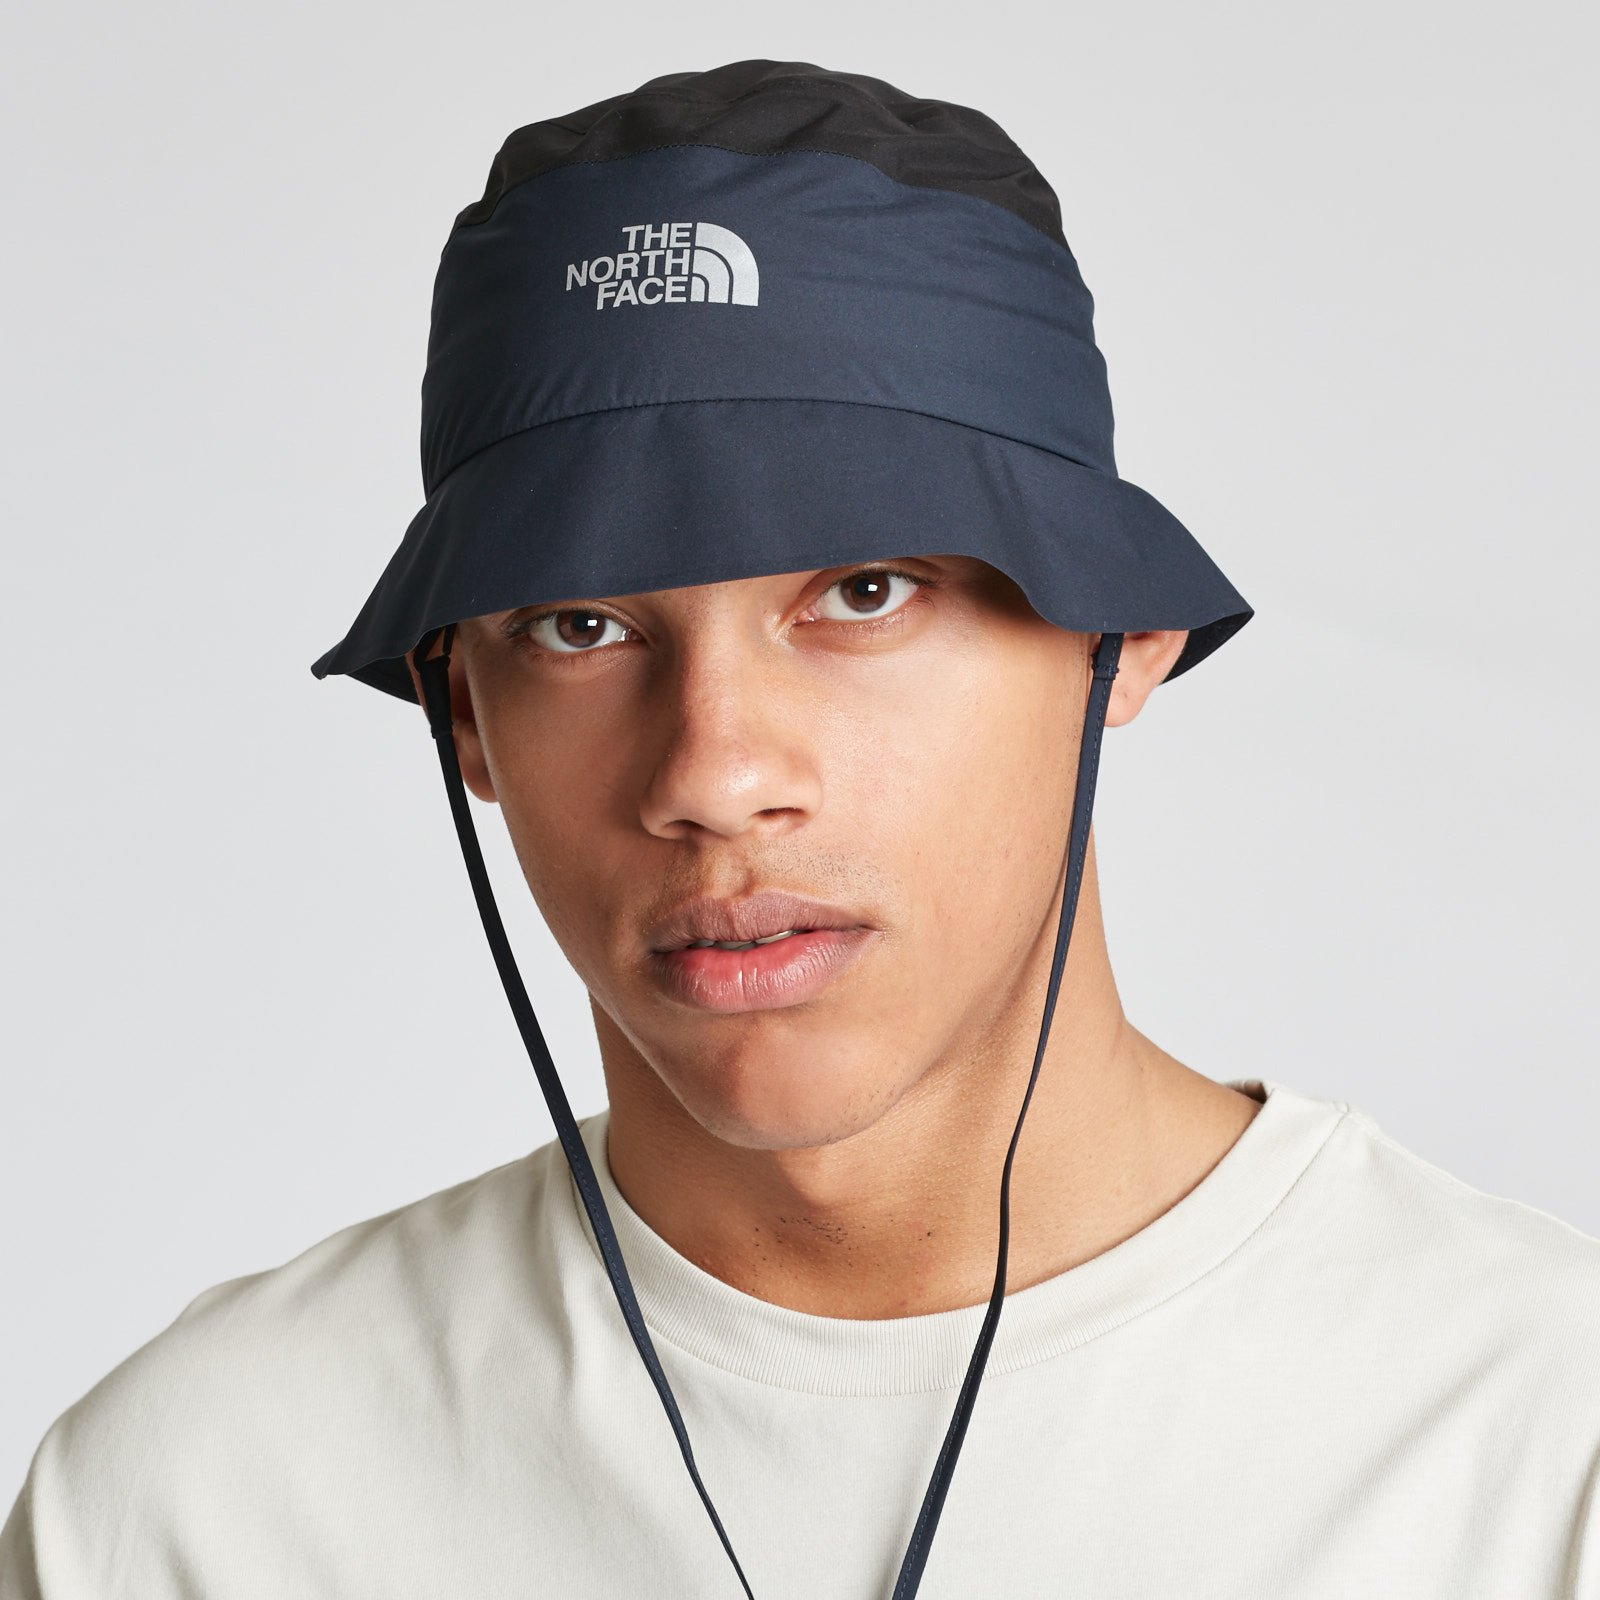 2cd4f251c16 The North Face GORE-TEX Bucket Hat - T0cf9lsxk - Sneakersnstuff ...